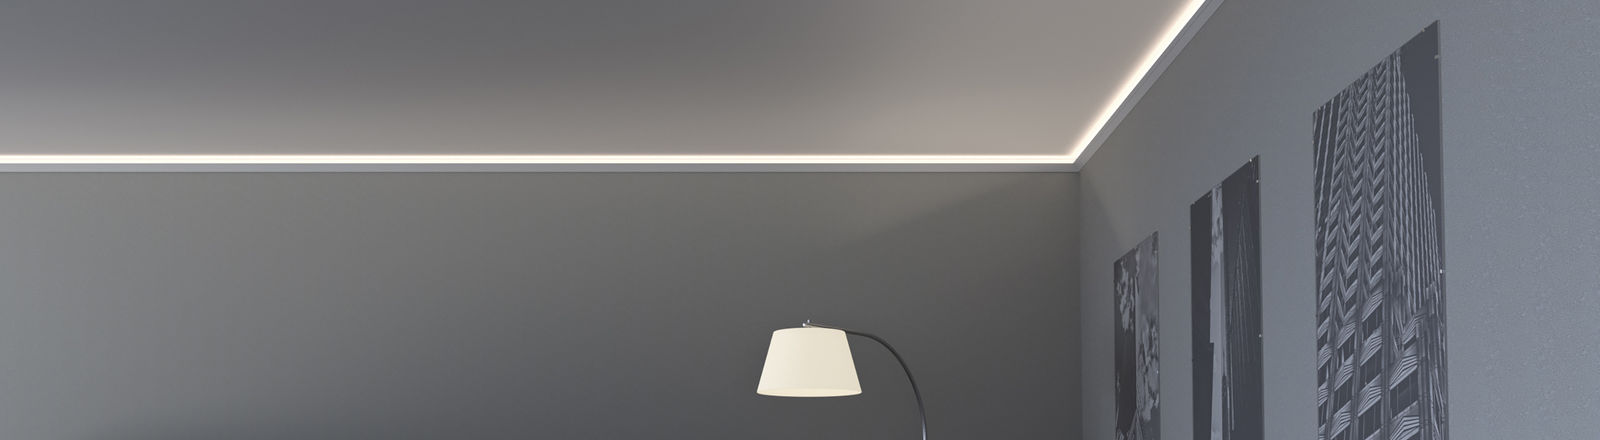 Fn Led Ceiling Profile Special Profiles Fn Neuhofer Holz